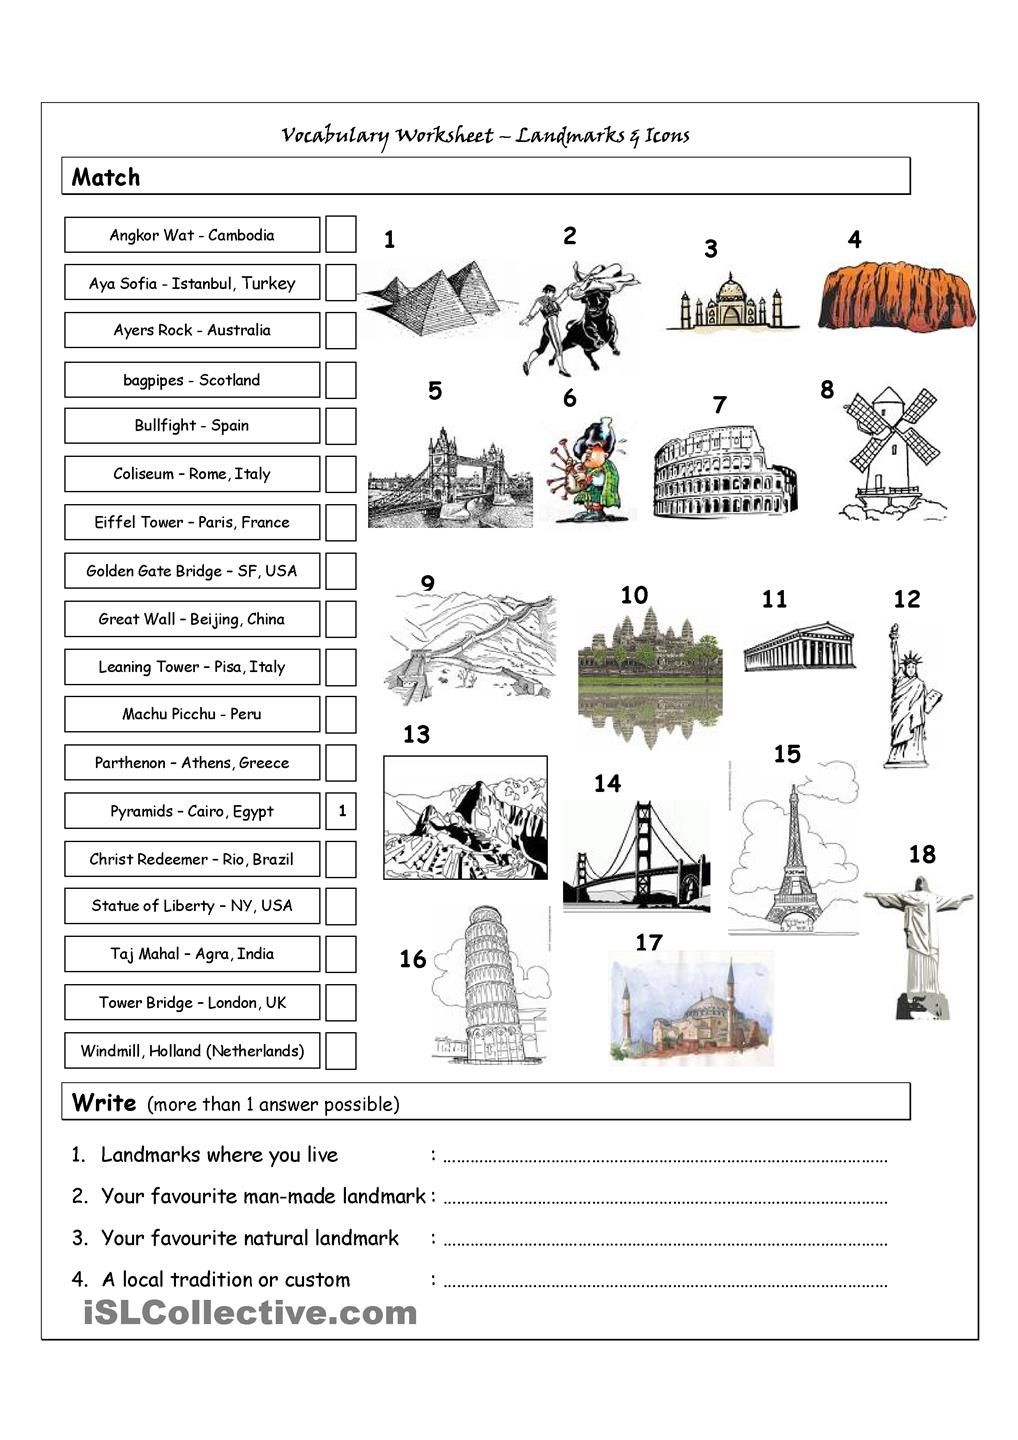 Vocabulary Matching Worksheet Landmarks Icons With Images